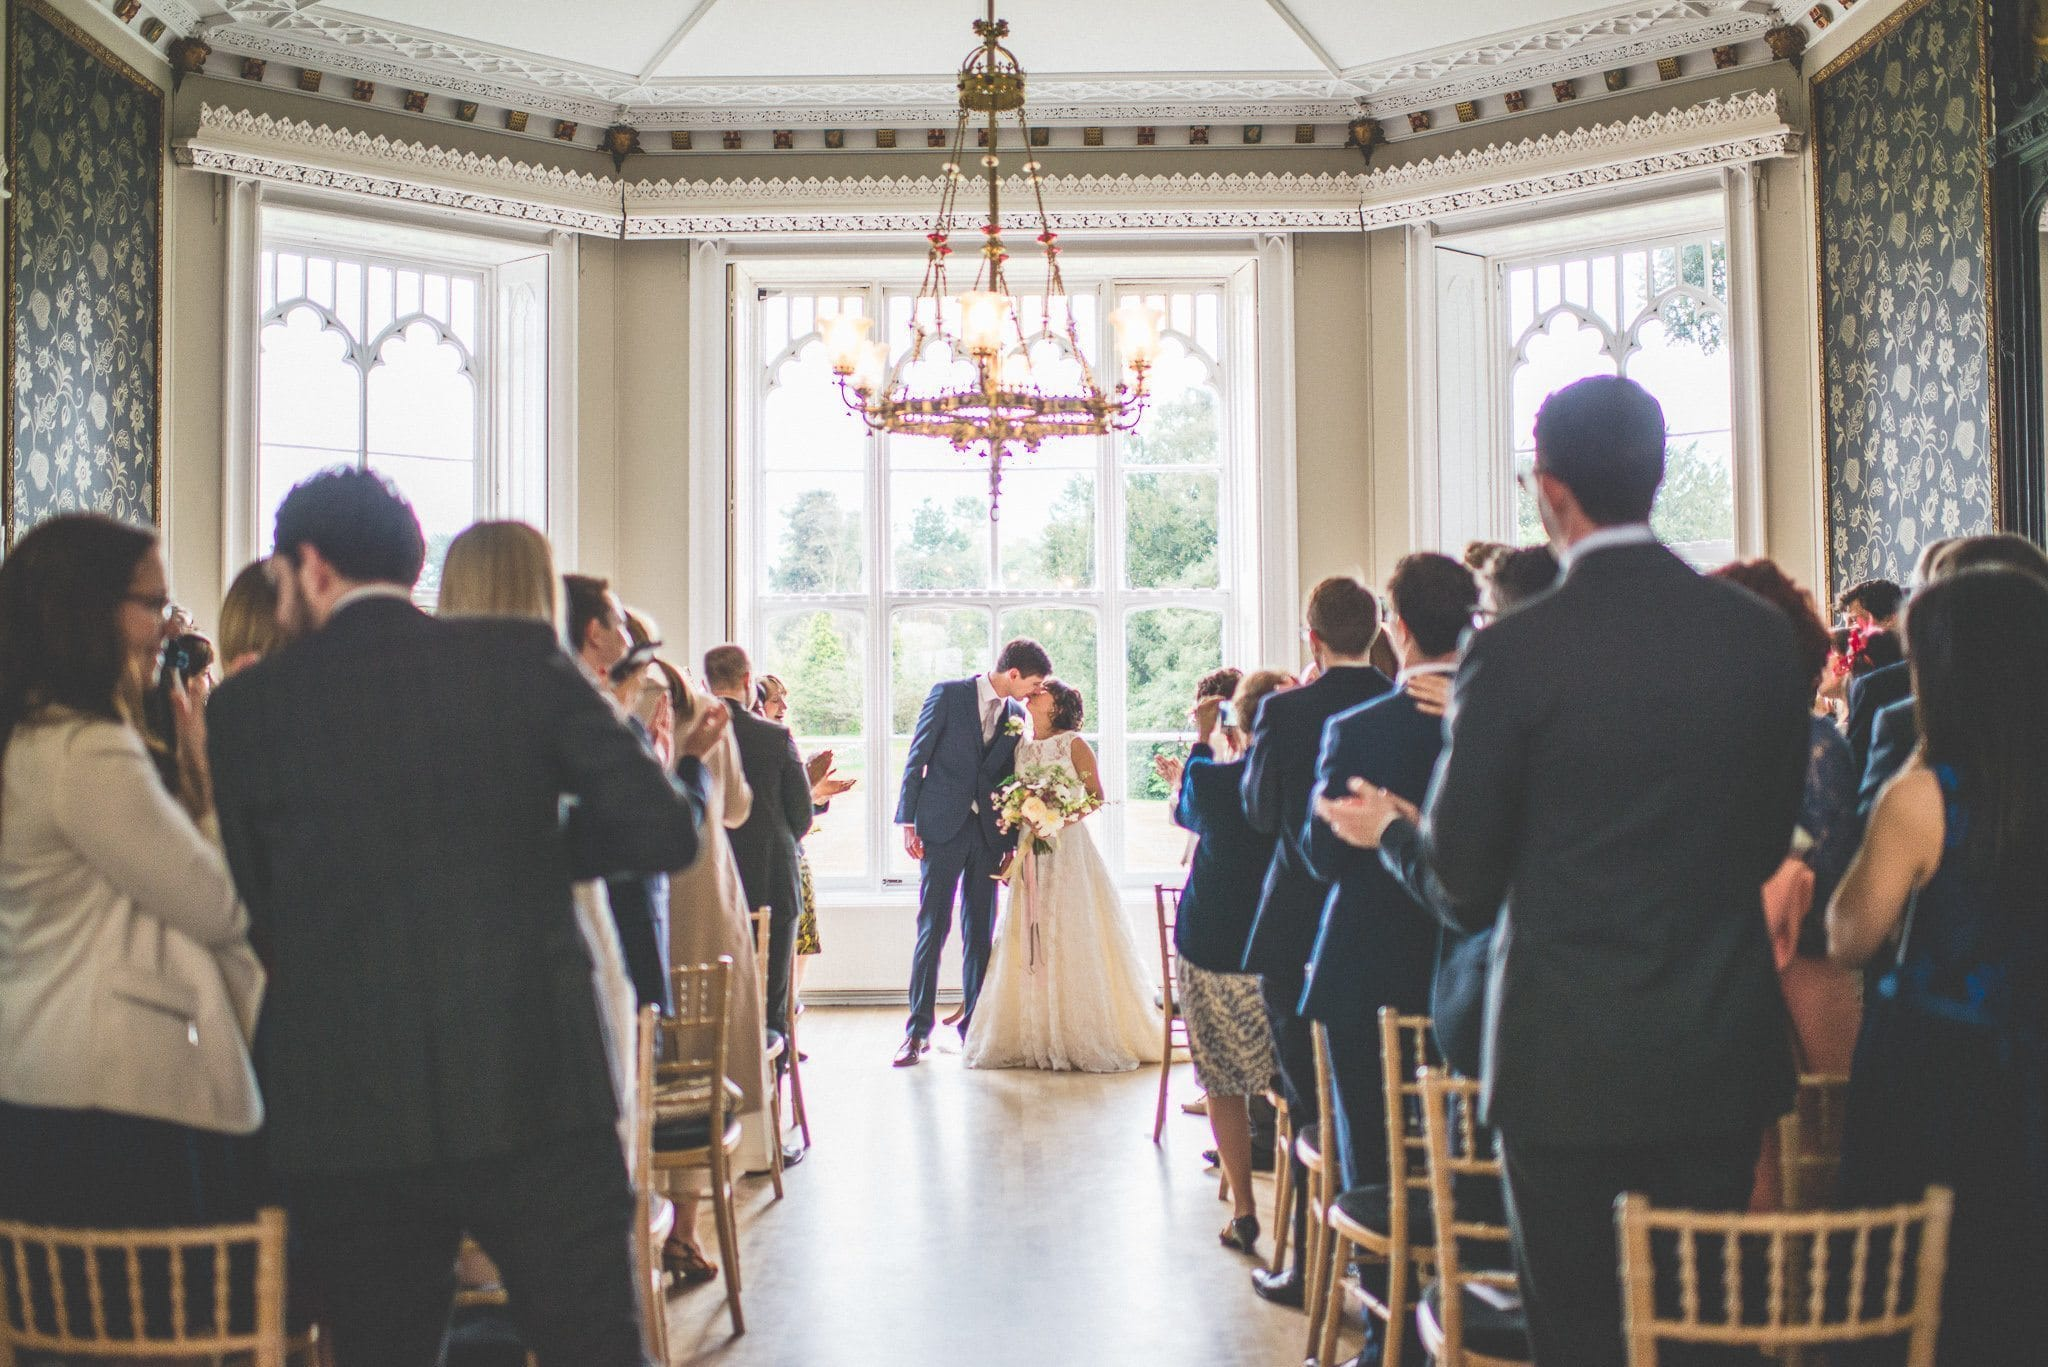 The newly married Andy and Jasmin kiss in front of the floor to ceiling windows of the ceremony room, while their guests stand and applaud